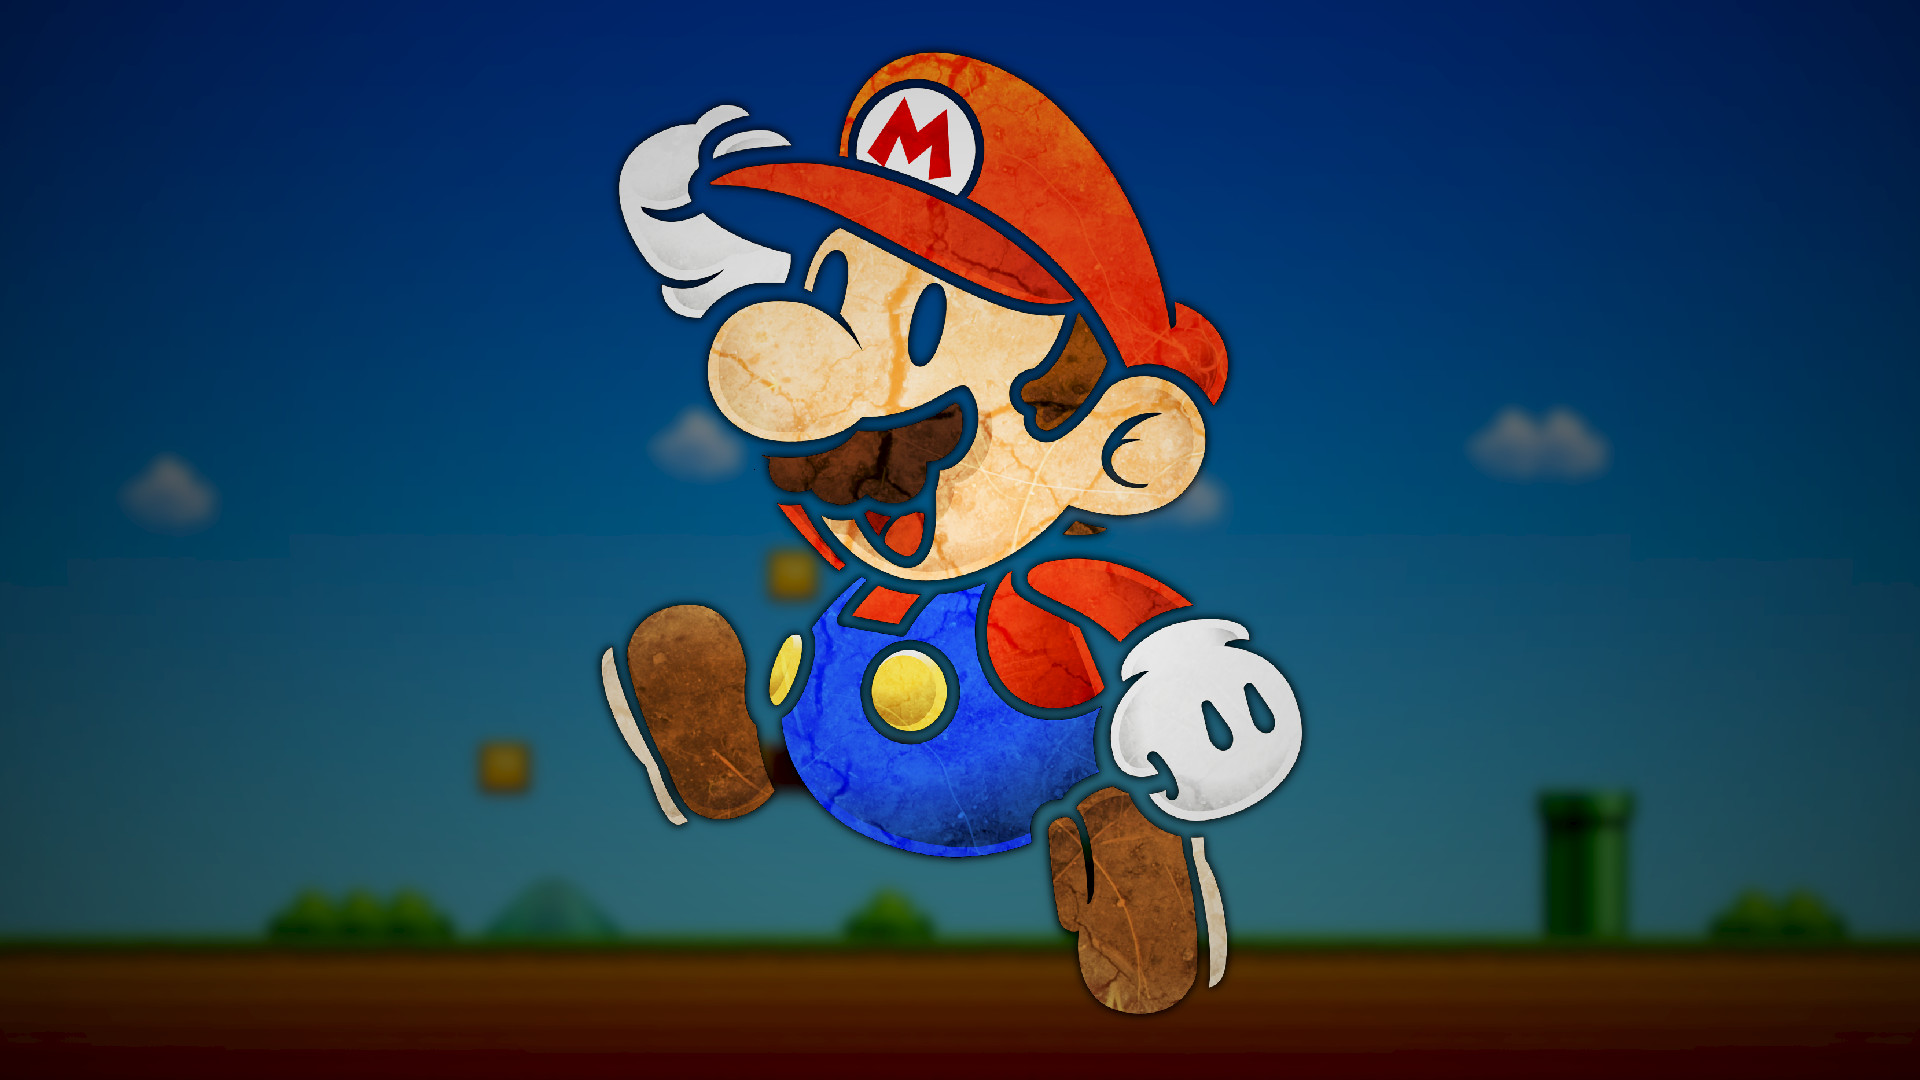 1920x1080 Super Mario, Paper Mario, Video Games, Digital Art, Nintendo .